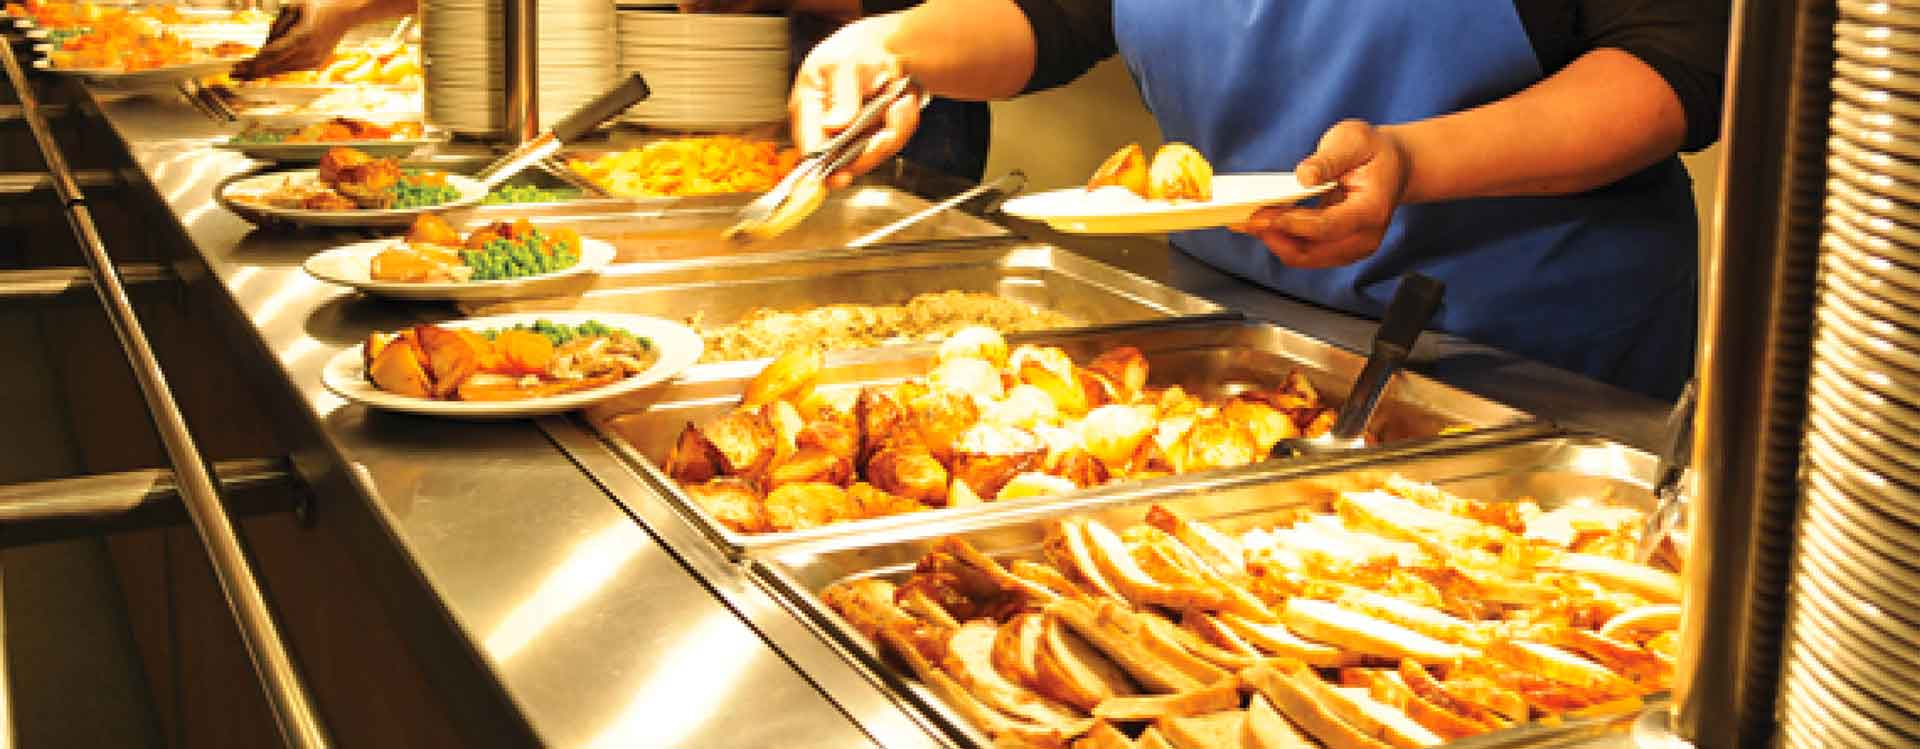 Free school meals opportunity for WG – The Pembrokeshire Herald